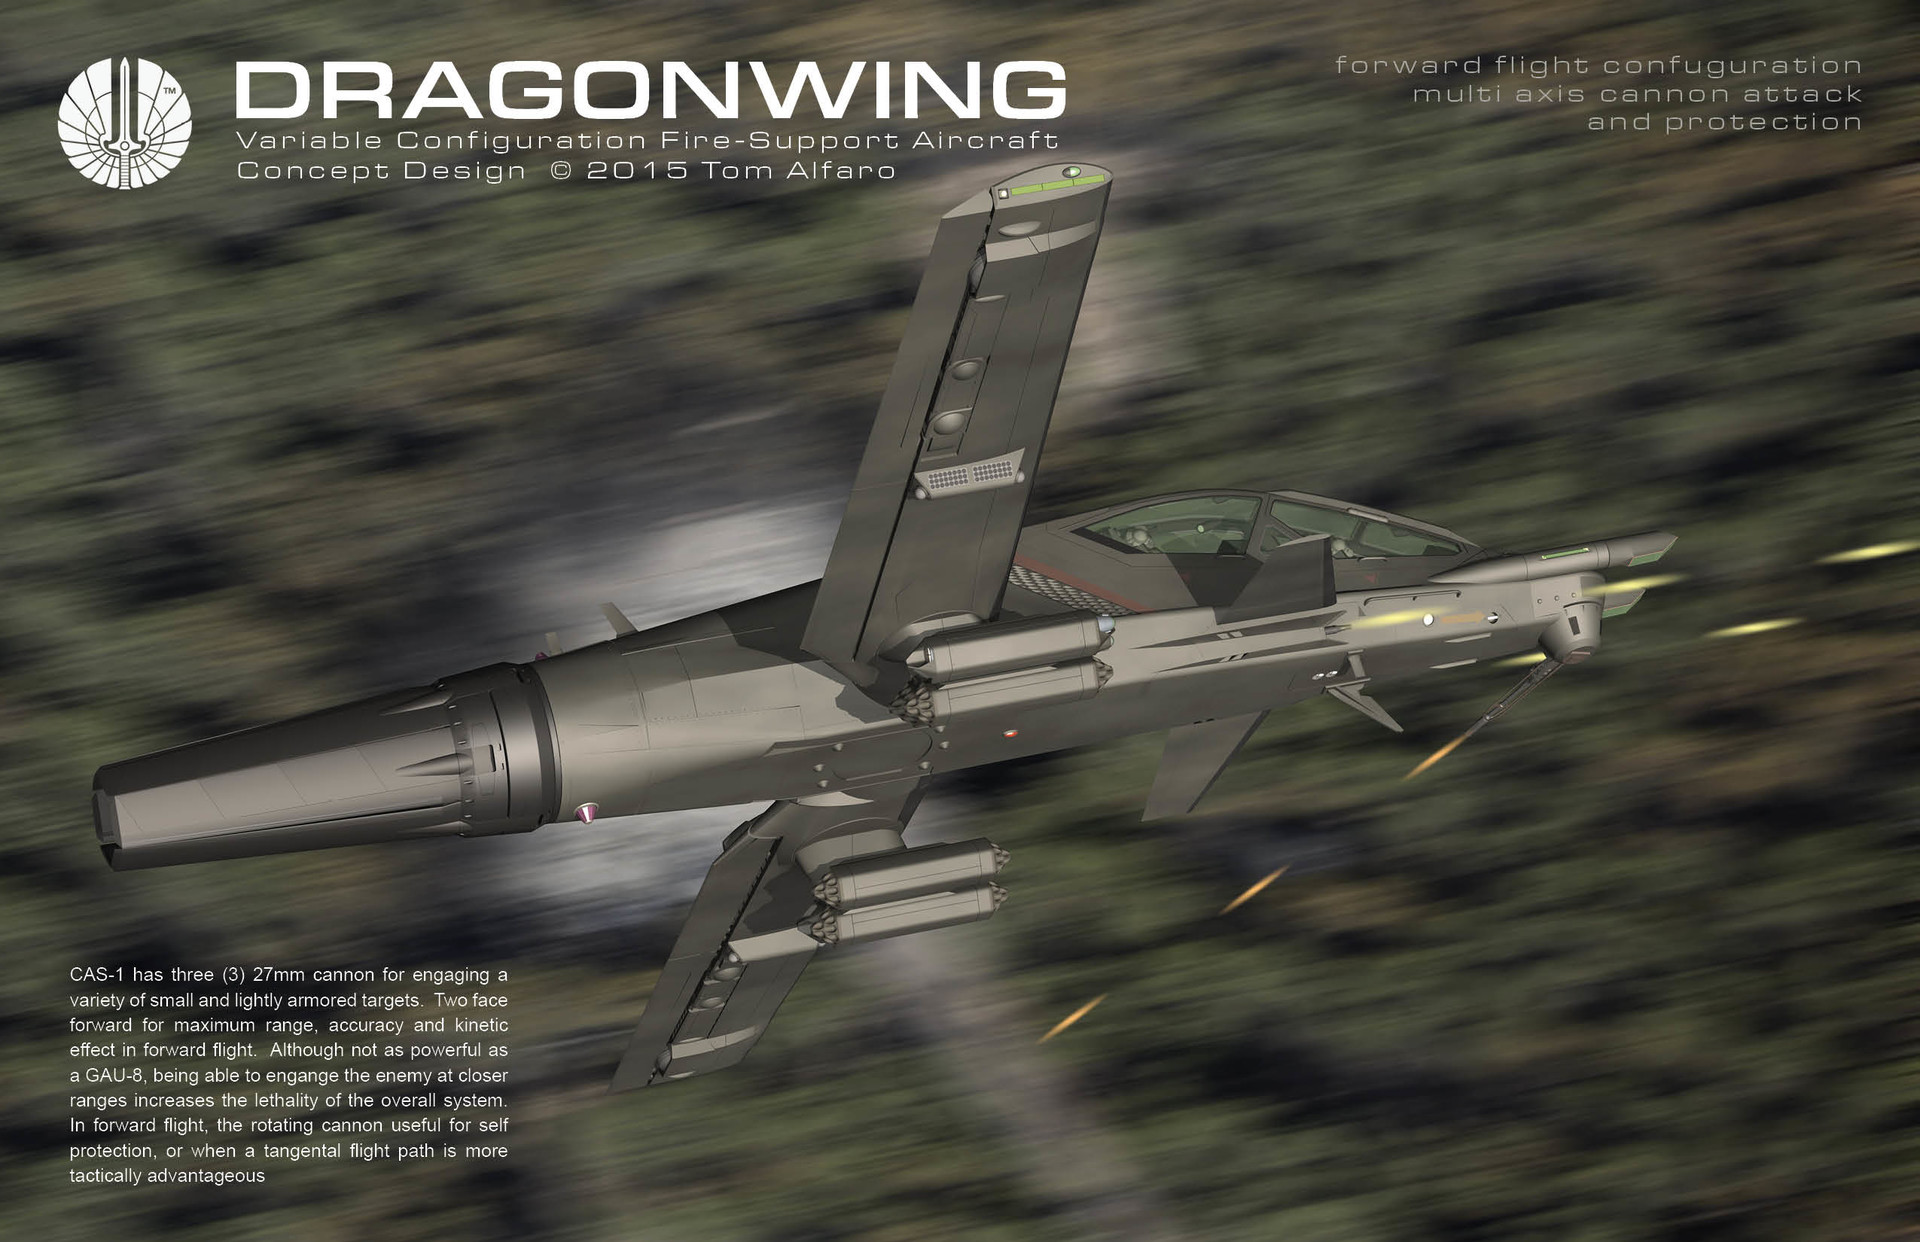 Tom alfaro dragonwing19